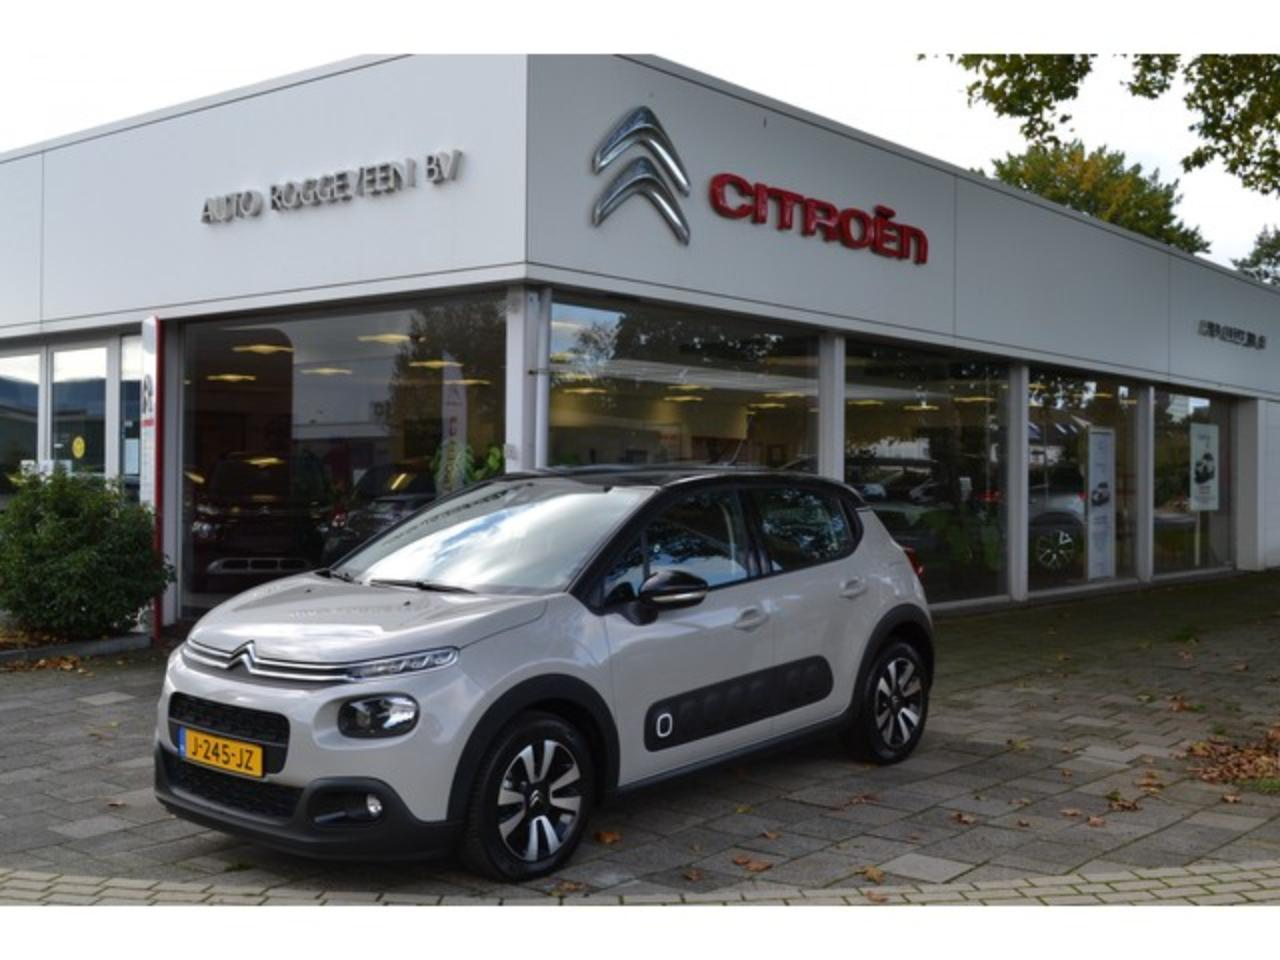 Citroën C3 Puretech 110pk EAT6 Shine Automaat Bi Color